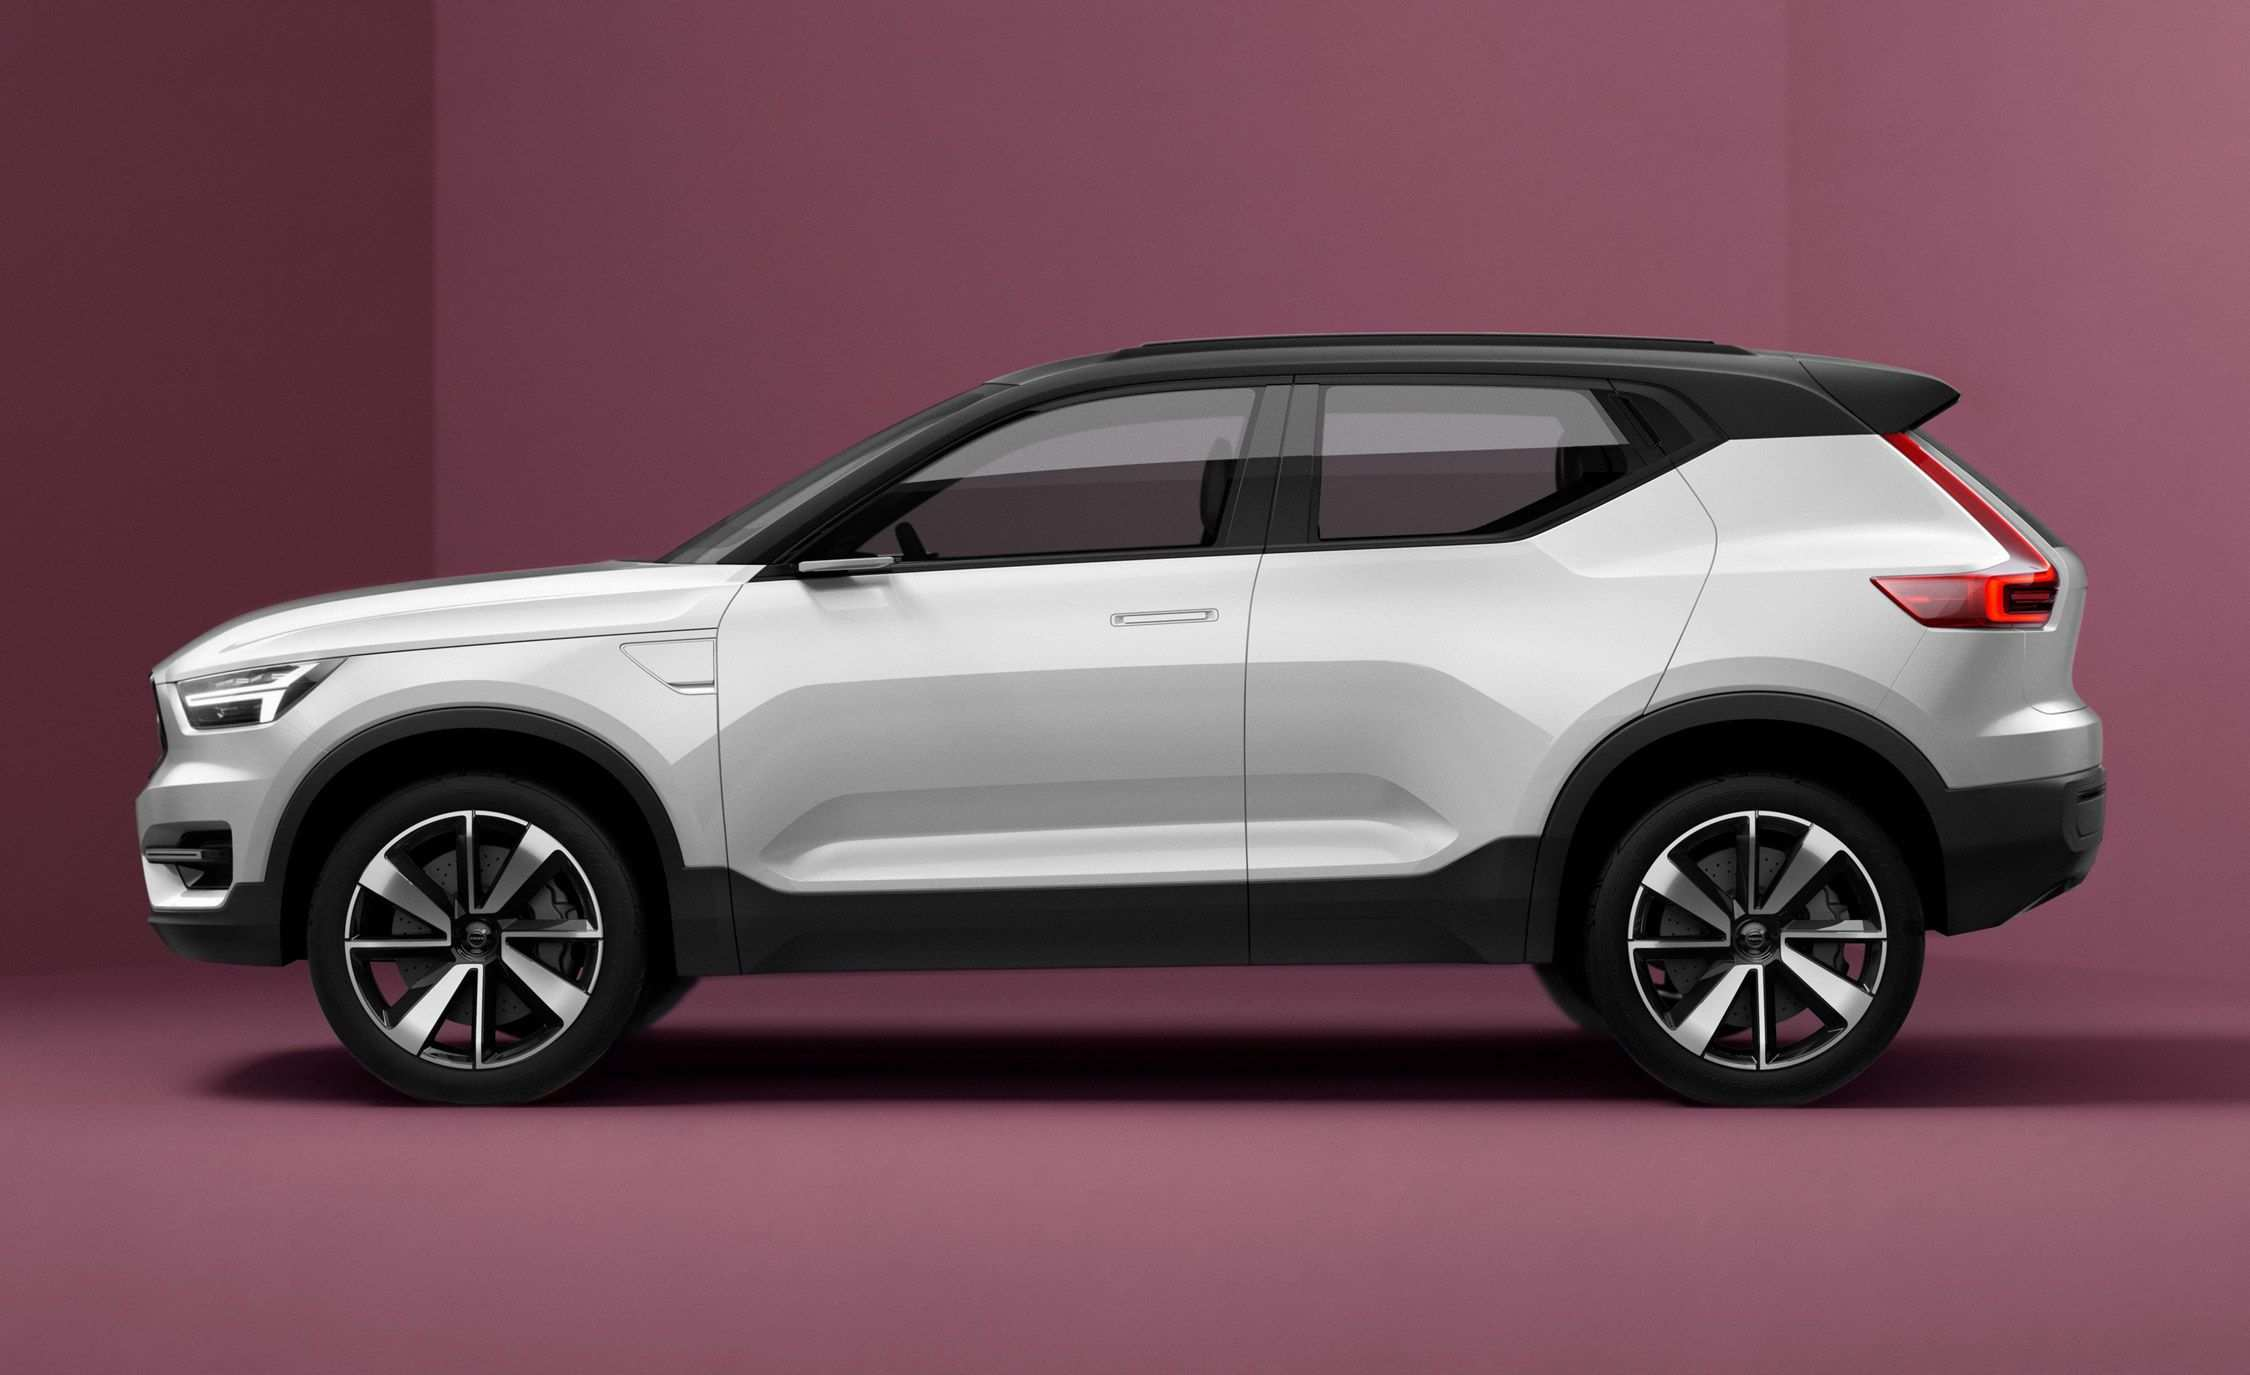 84 Concept of 2019 Volvo Xc40 Price Pictures by 2019 Volvo Xc40 Price